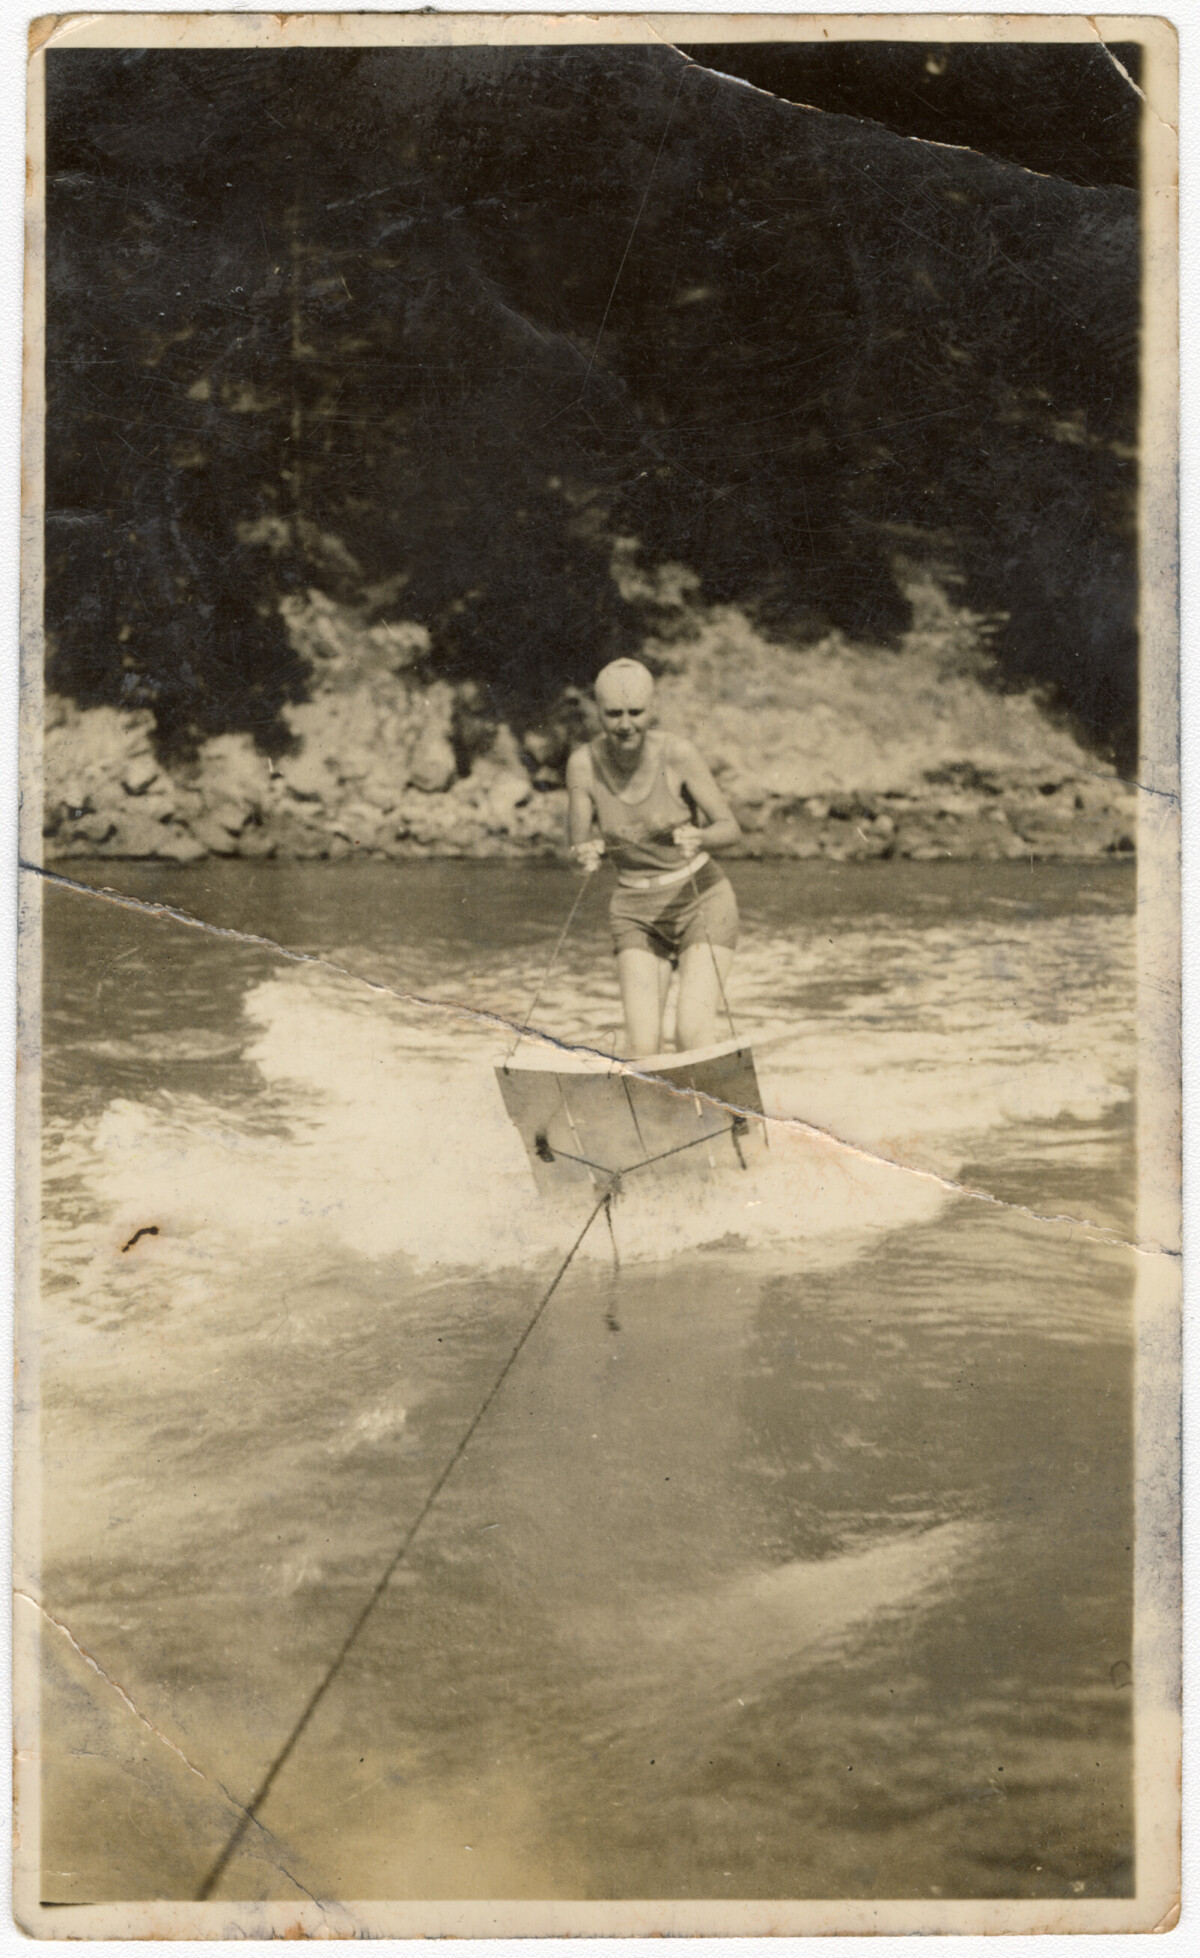 Waterskiing at Taylors Mistake. 1928. Christchurch City Libraries Photo Hunt. In copyright. CCL-PH19-0131